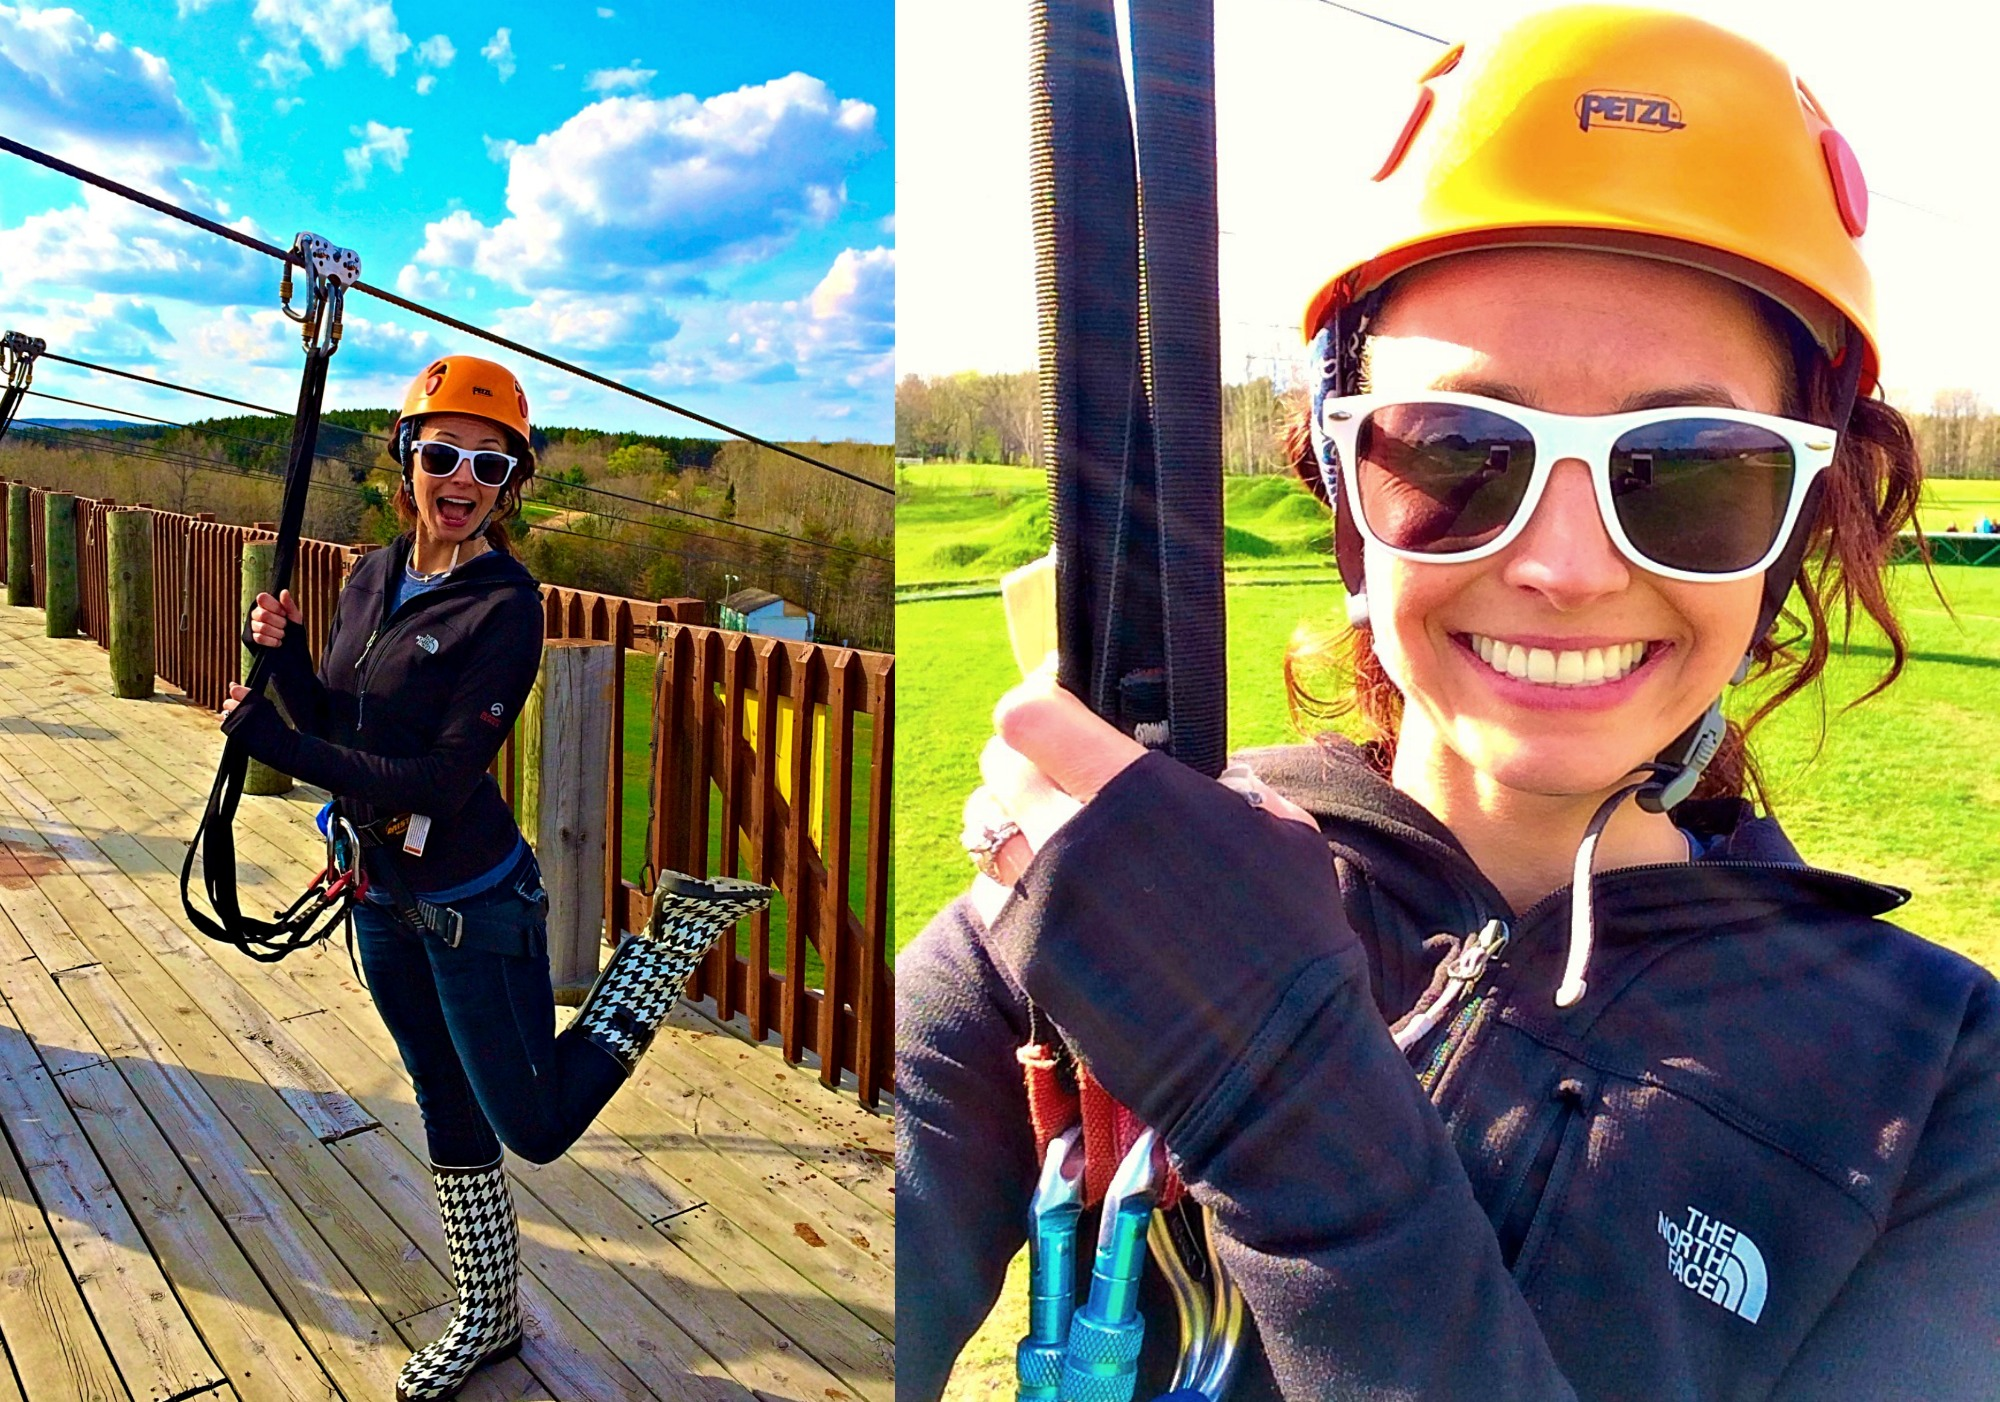 heather zip lining at spring hill